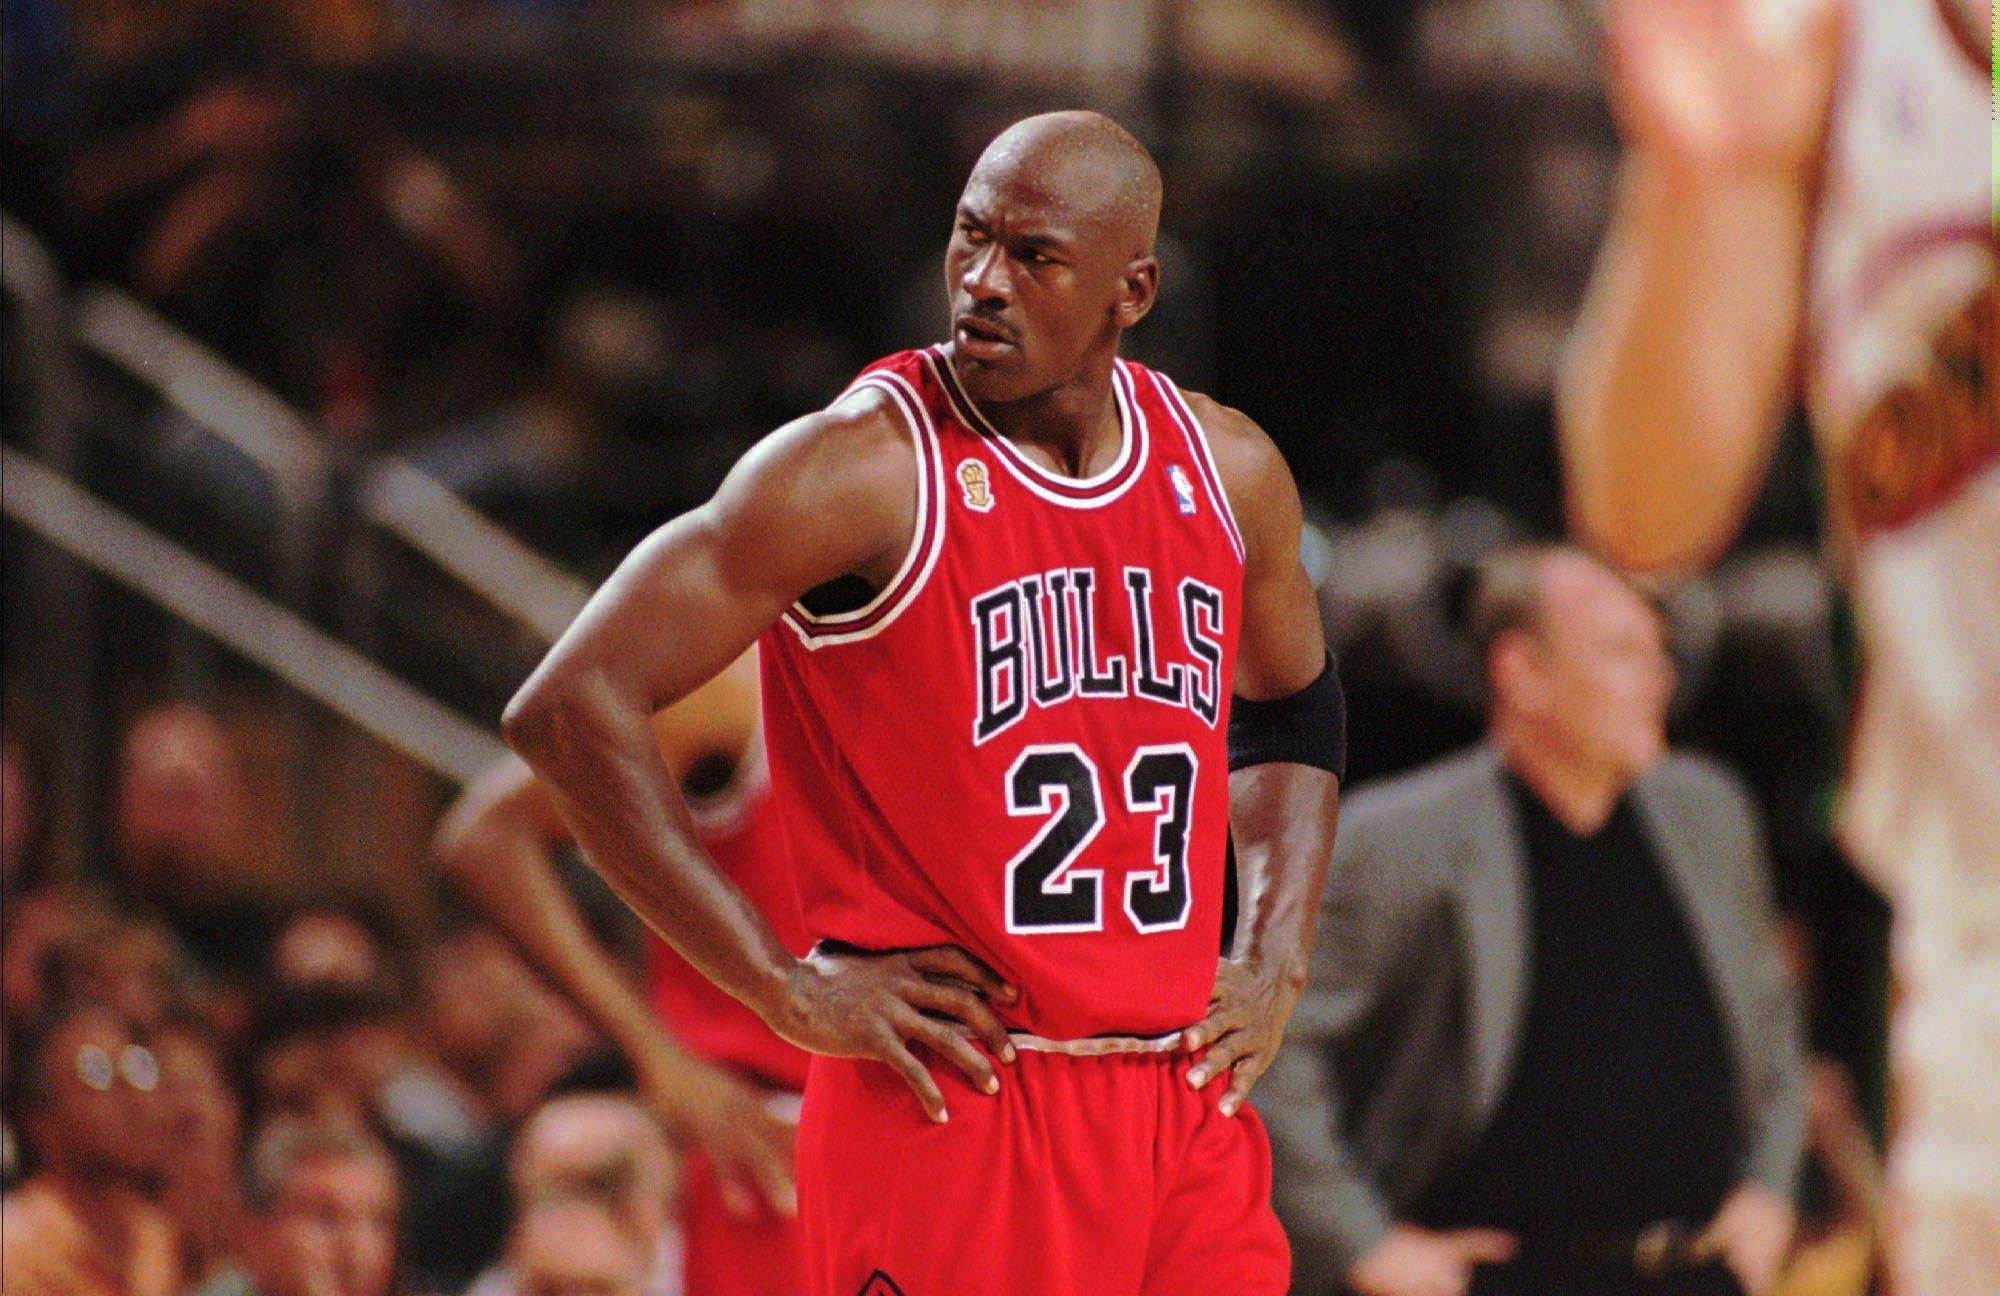 michael-jordan-chicago-bulls-desktop-backgrounds - wallpaper.wiki